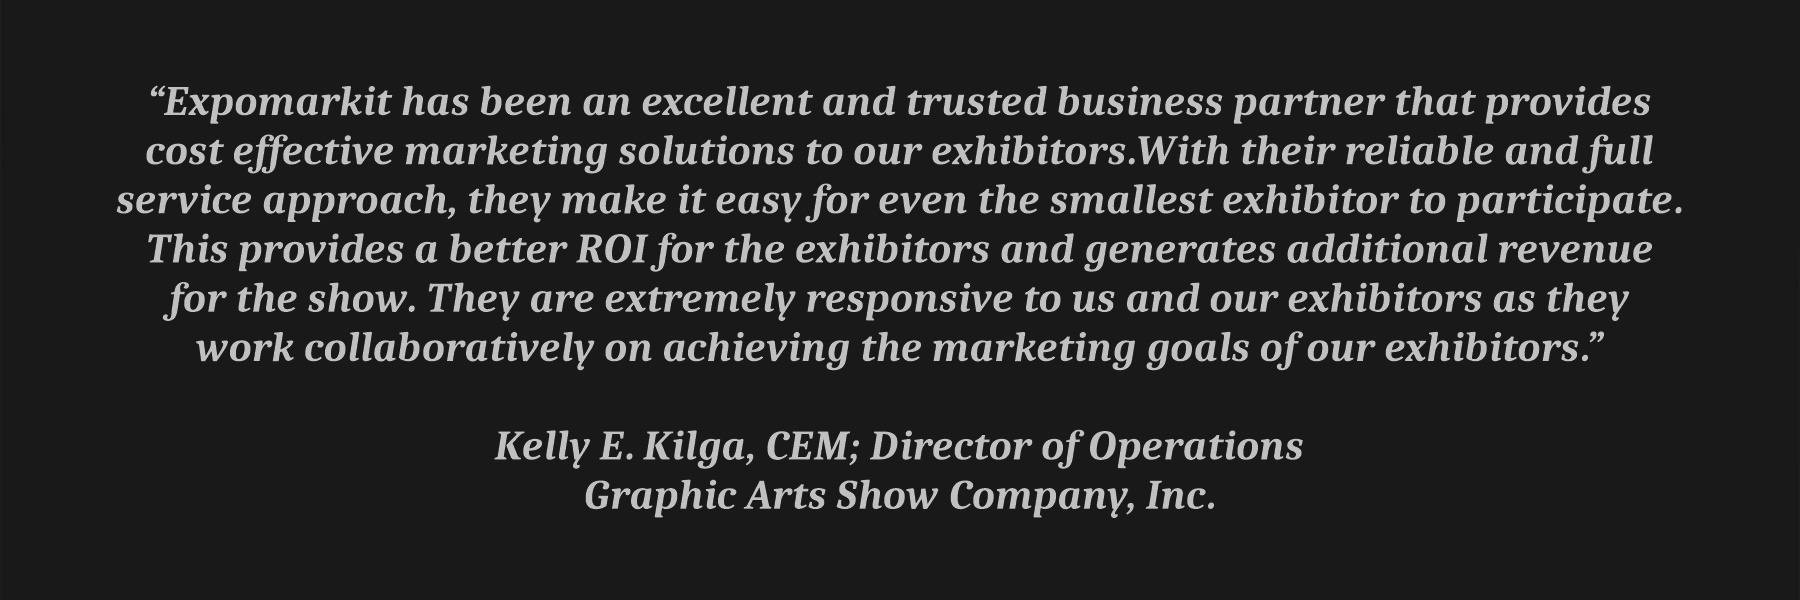 Graphic Arts Show Testimonial